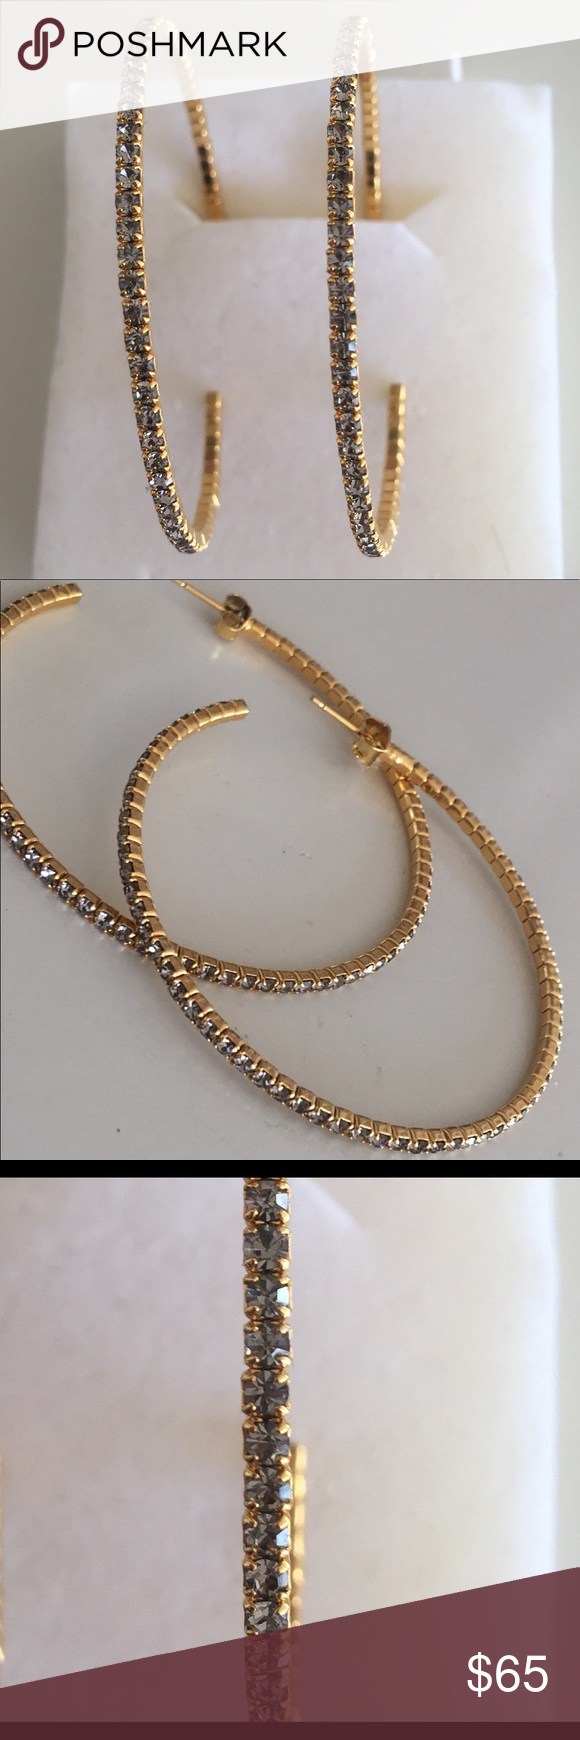 """2"""" Hoops Dipped by hand in Liquid 18K gold with set stones"""